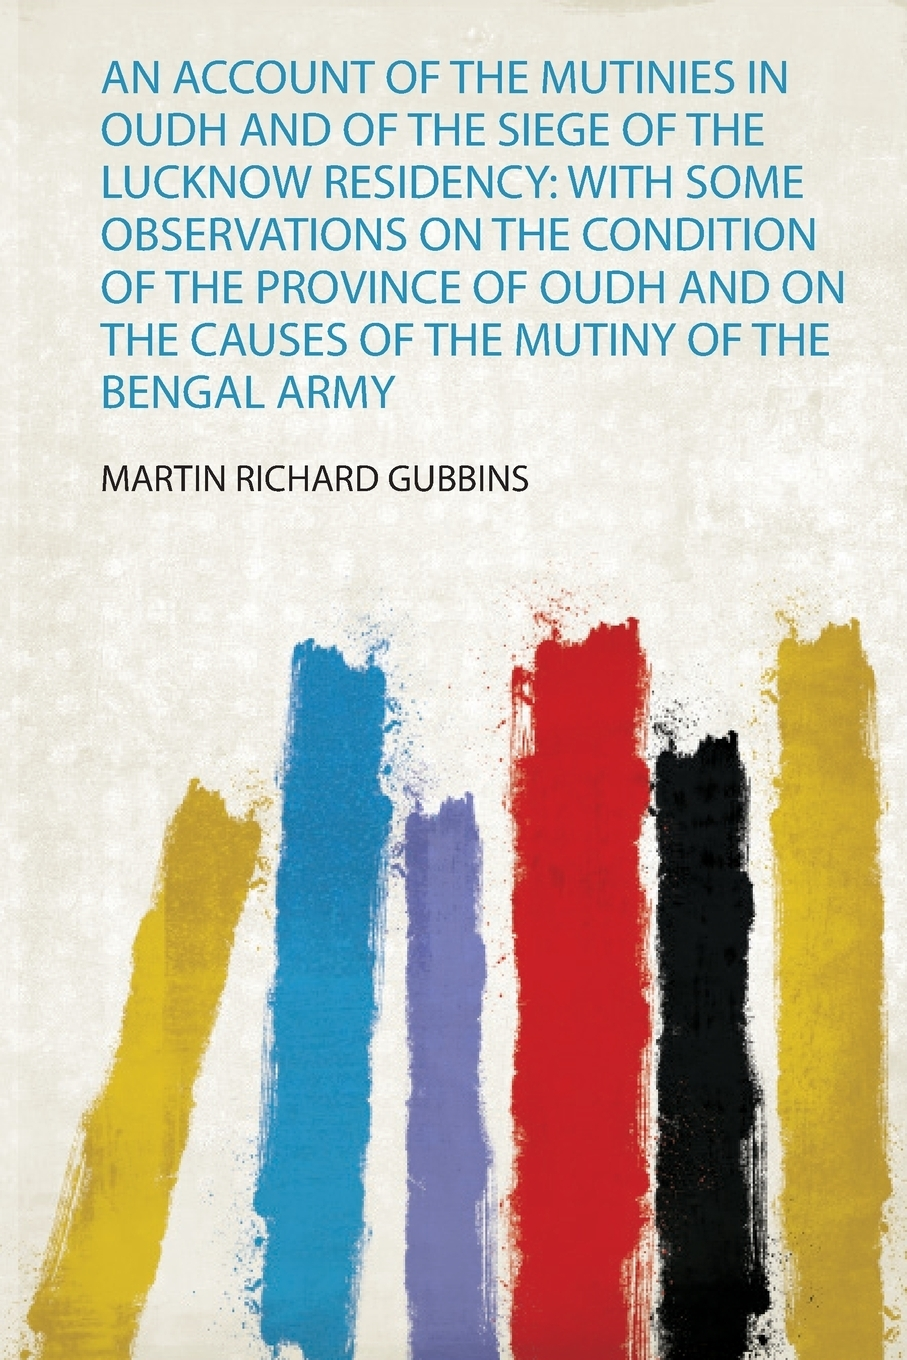 An Account of the Mutinies in Oudh and Siege Lucknow Residency. With Some Observations on Condition Province Causes Mutiny Bengal Army